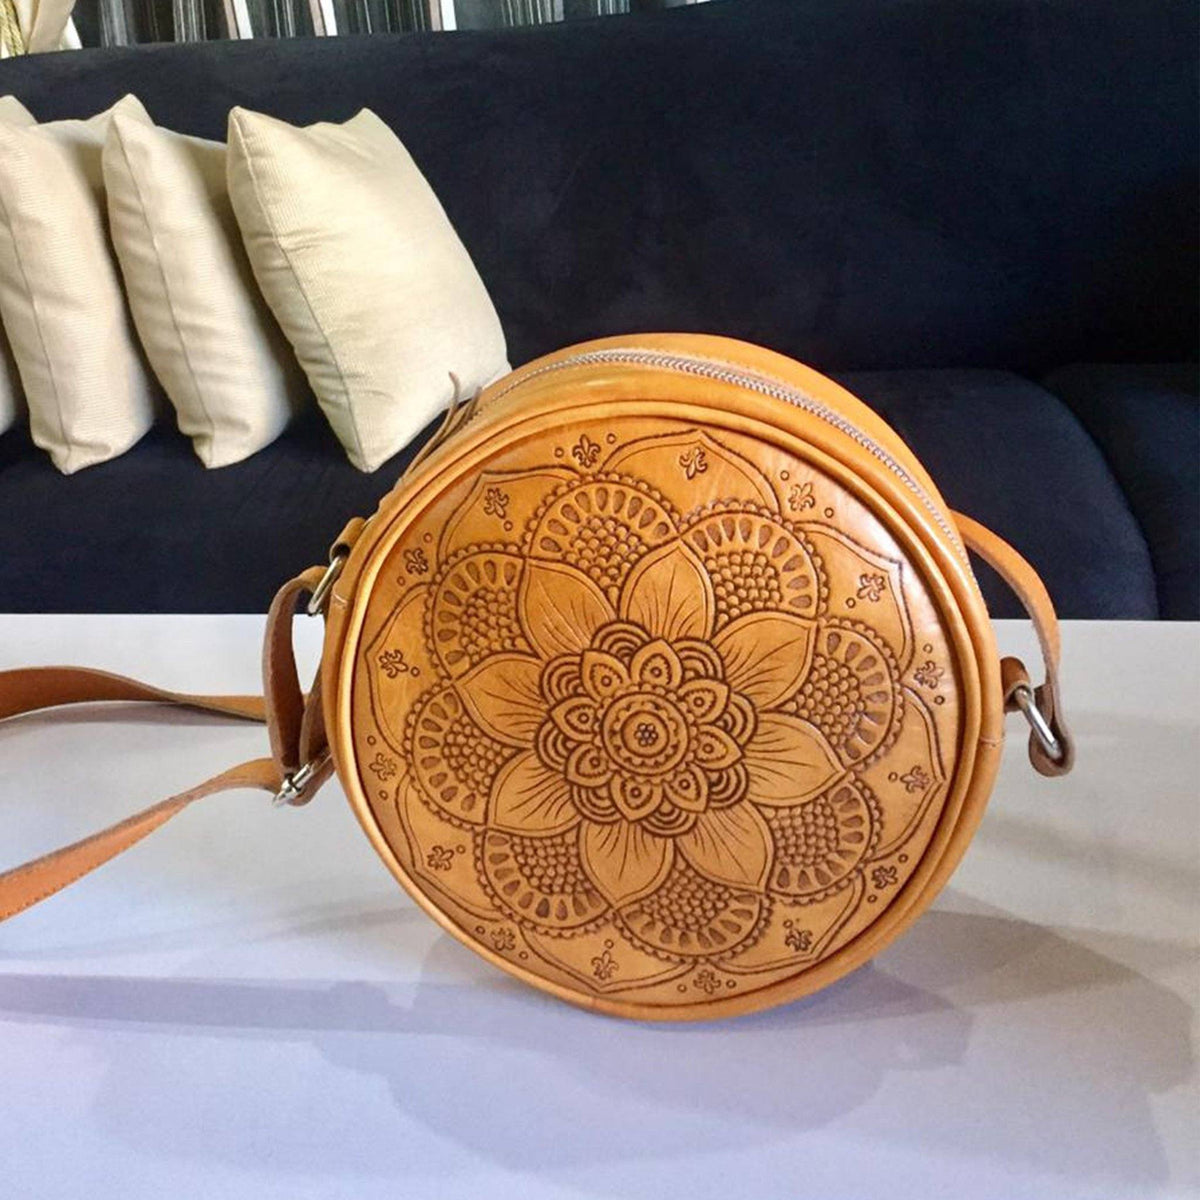 Bags - Round Tooled Leather Bag | Custom Bali Carving Crossbody Boho Bag